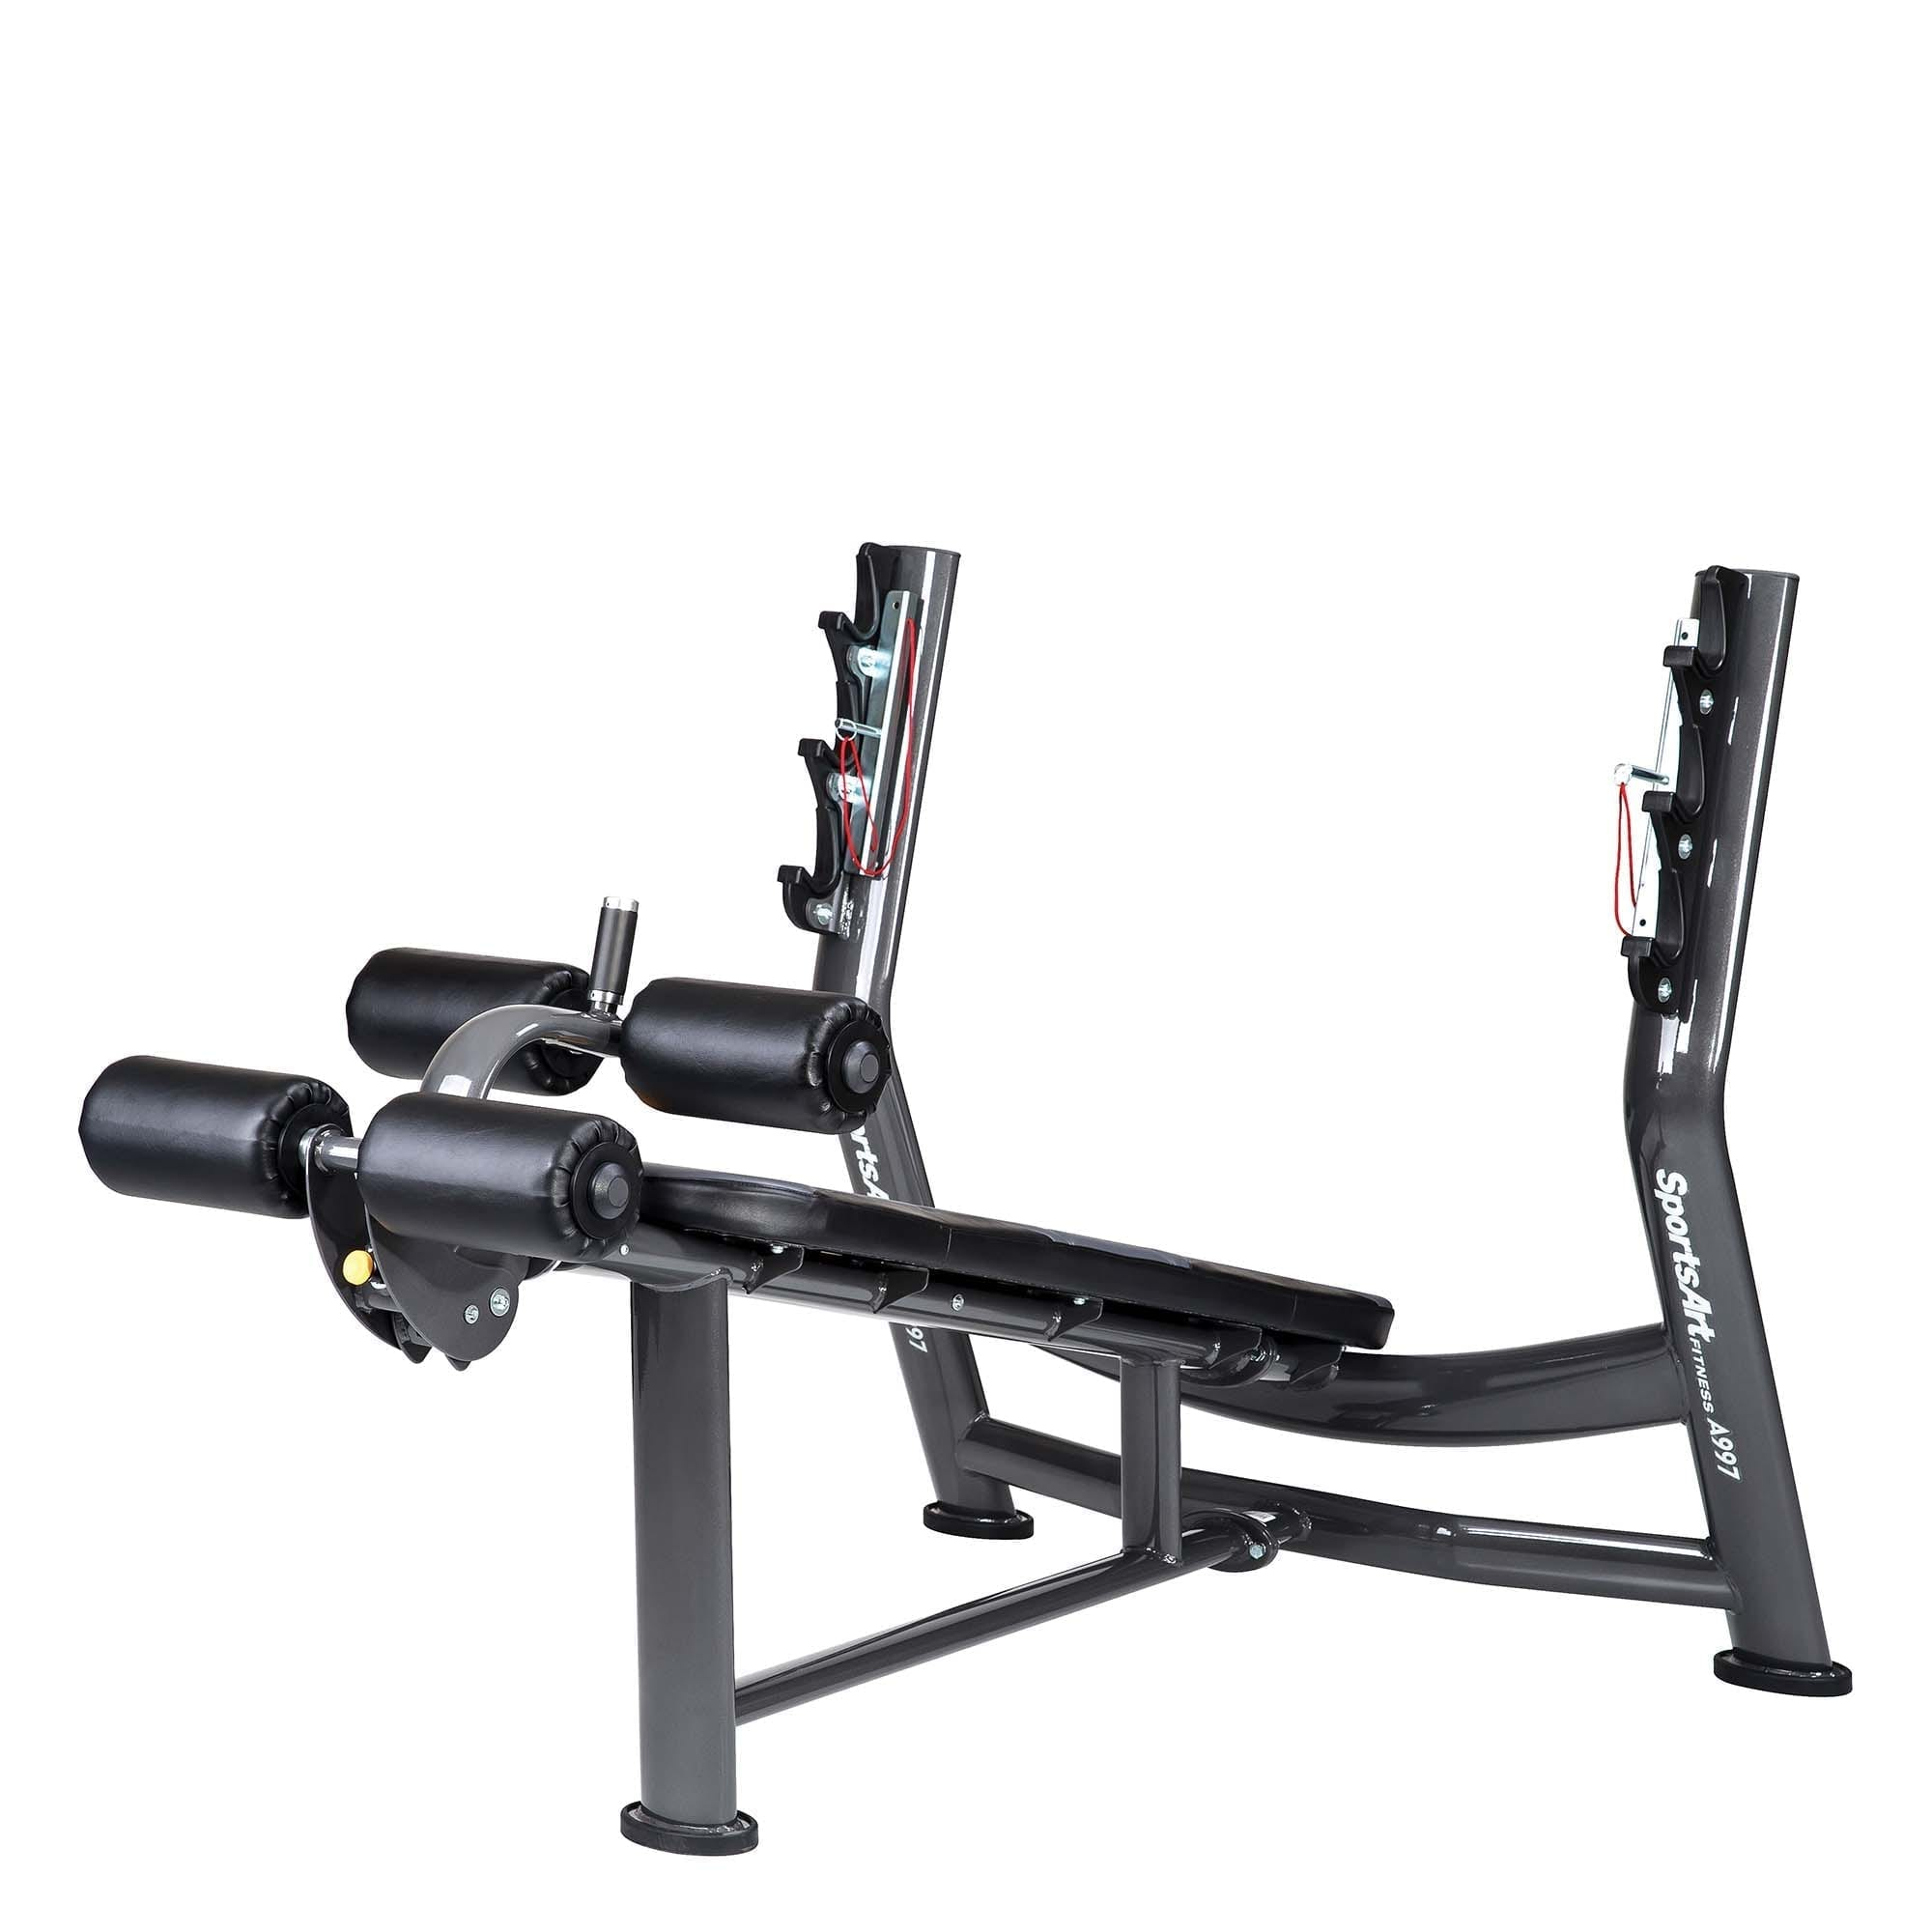 OLYMPIC DECLINE BENCH PRESS - SPORTSART (A997)